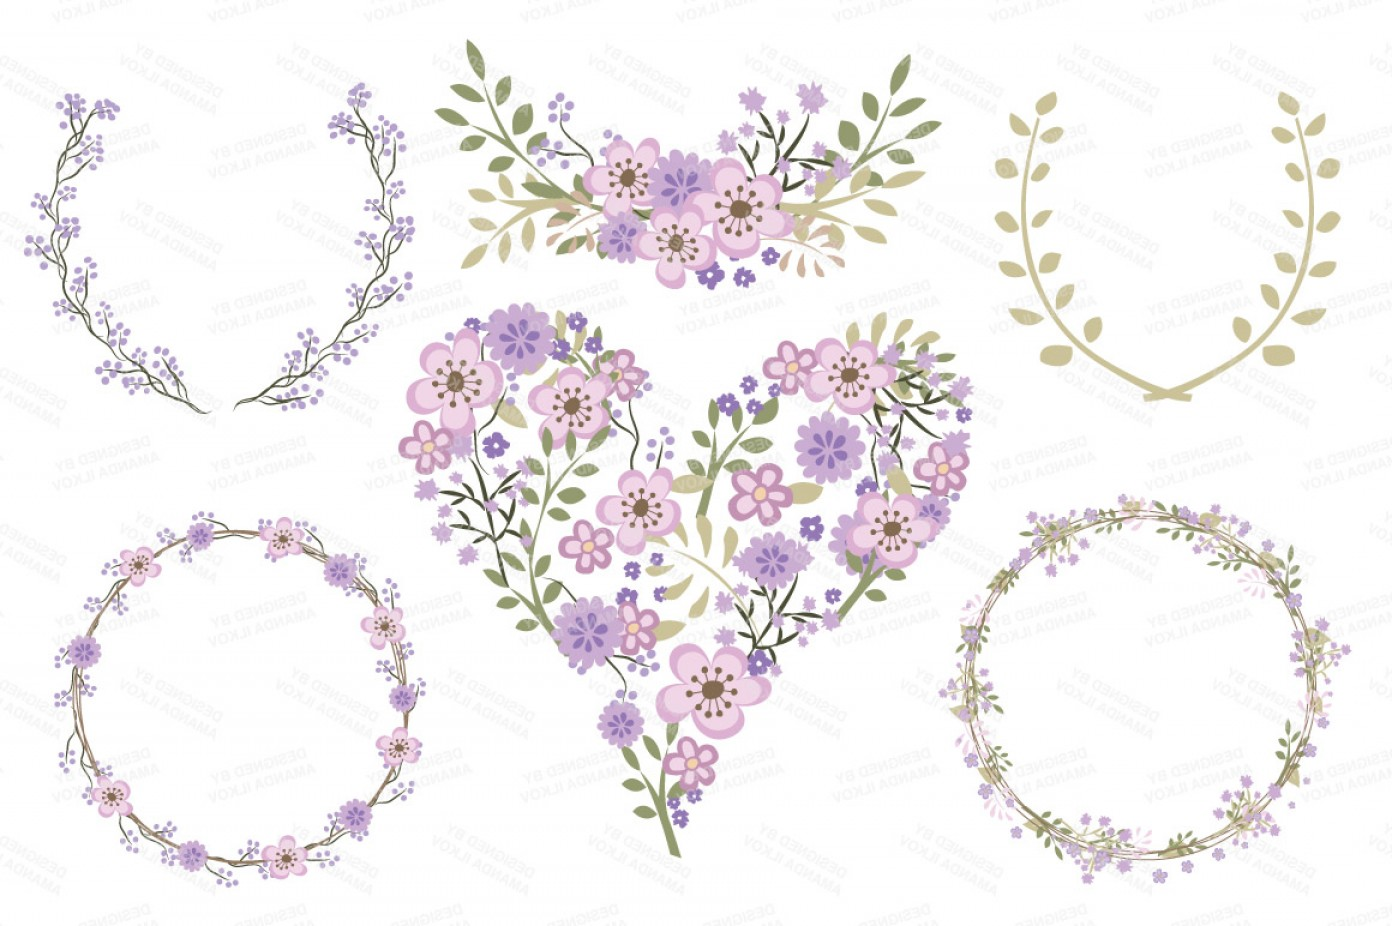 Lilac Wedding Vectors: Clara Vintage Floral Wedding Heart Clipart In Lavender